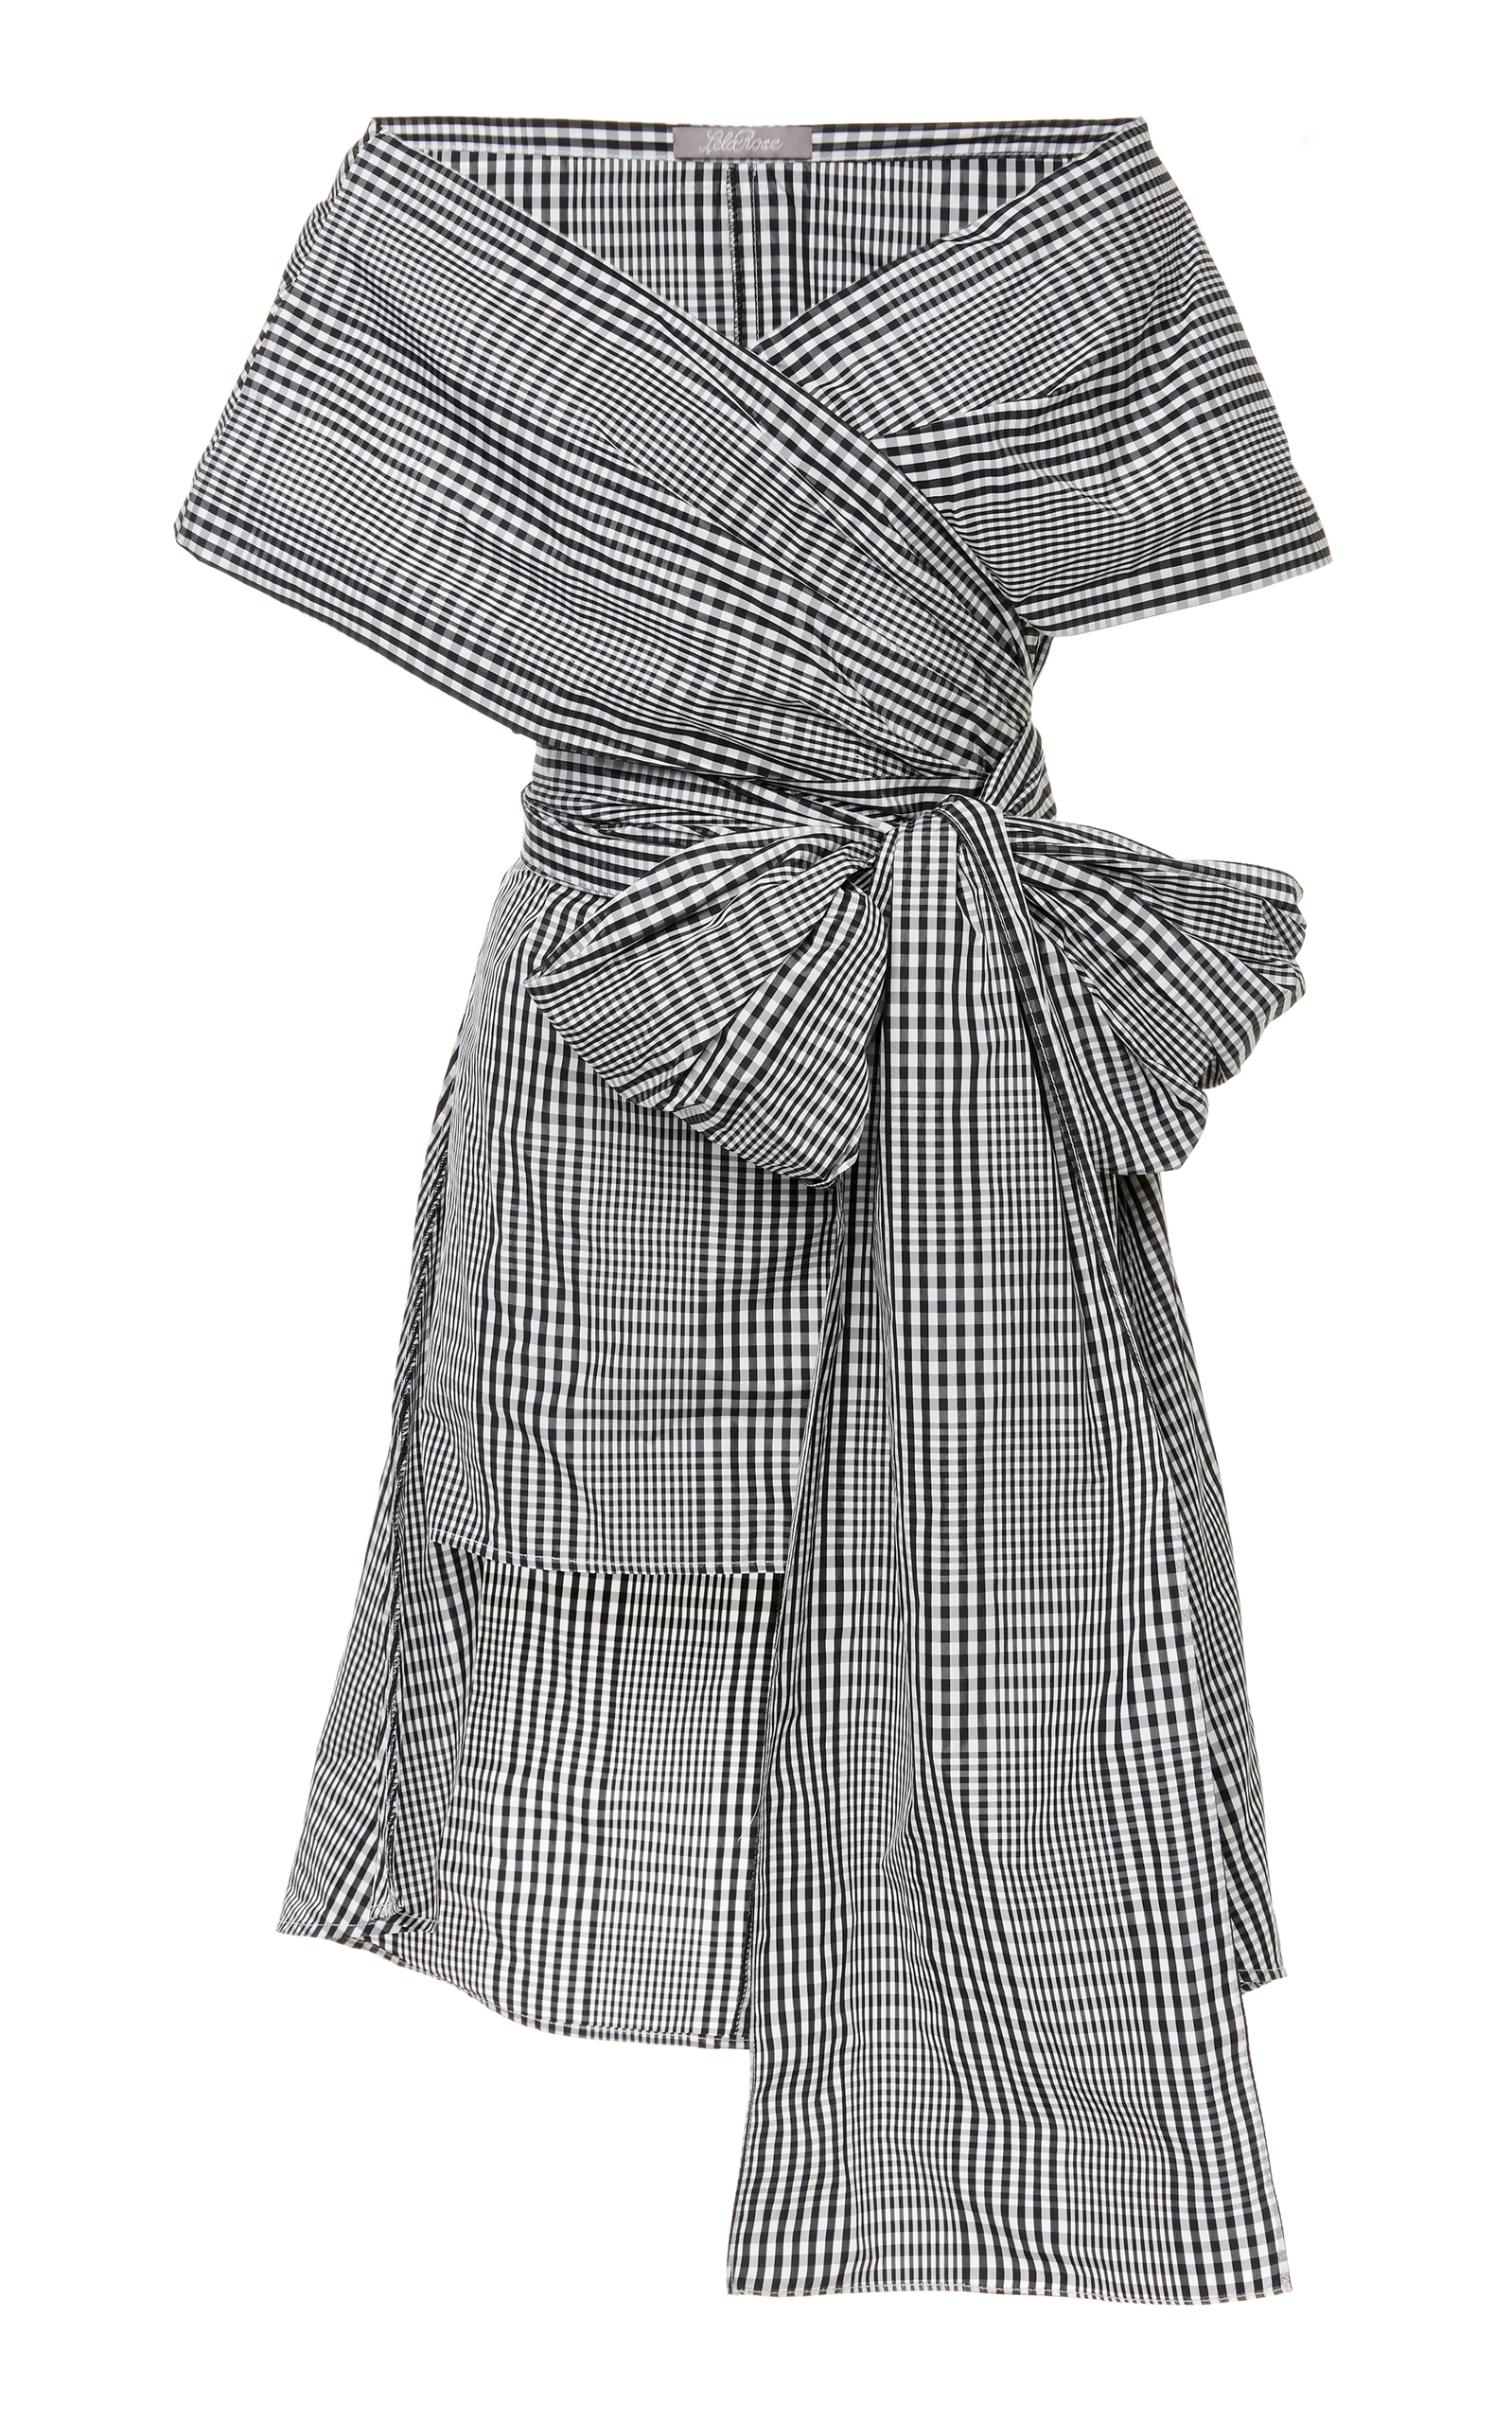 LELA ROSE Bow-Detailed Gingham Poplin Wrap Top in Black